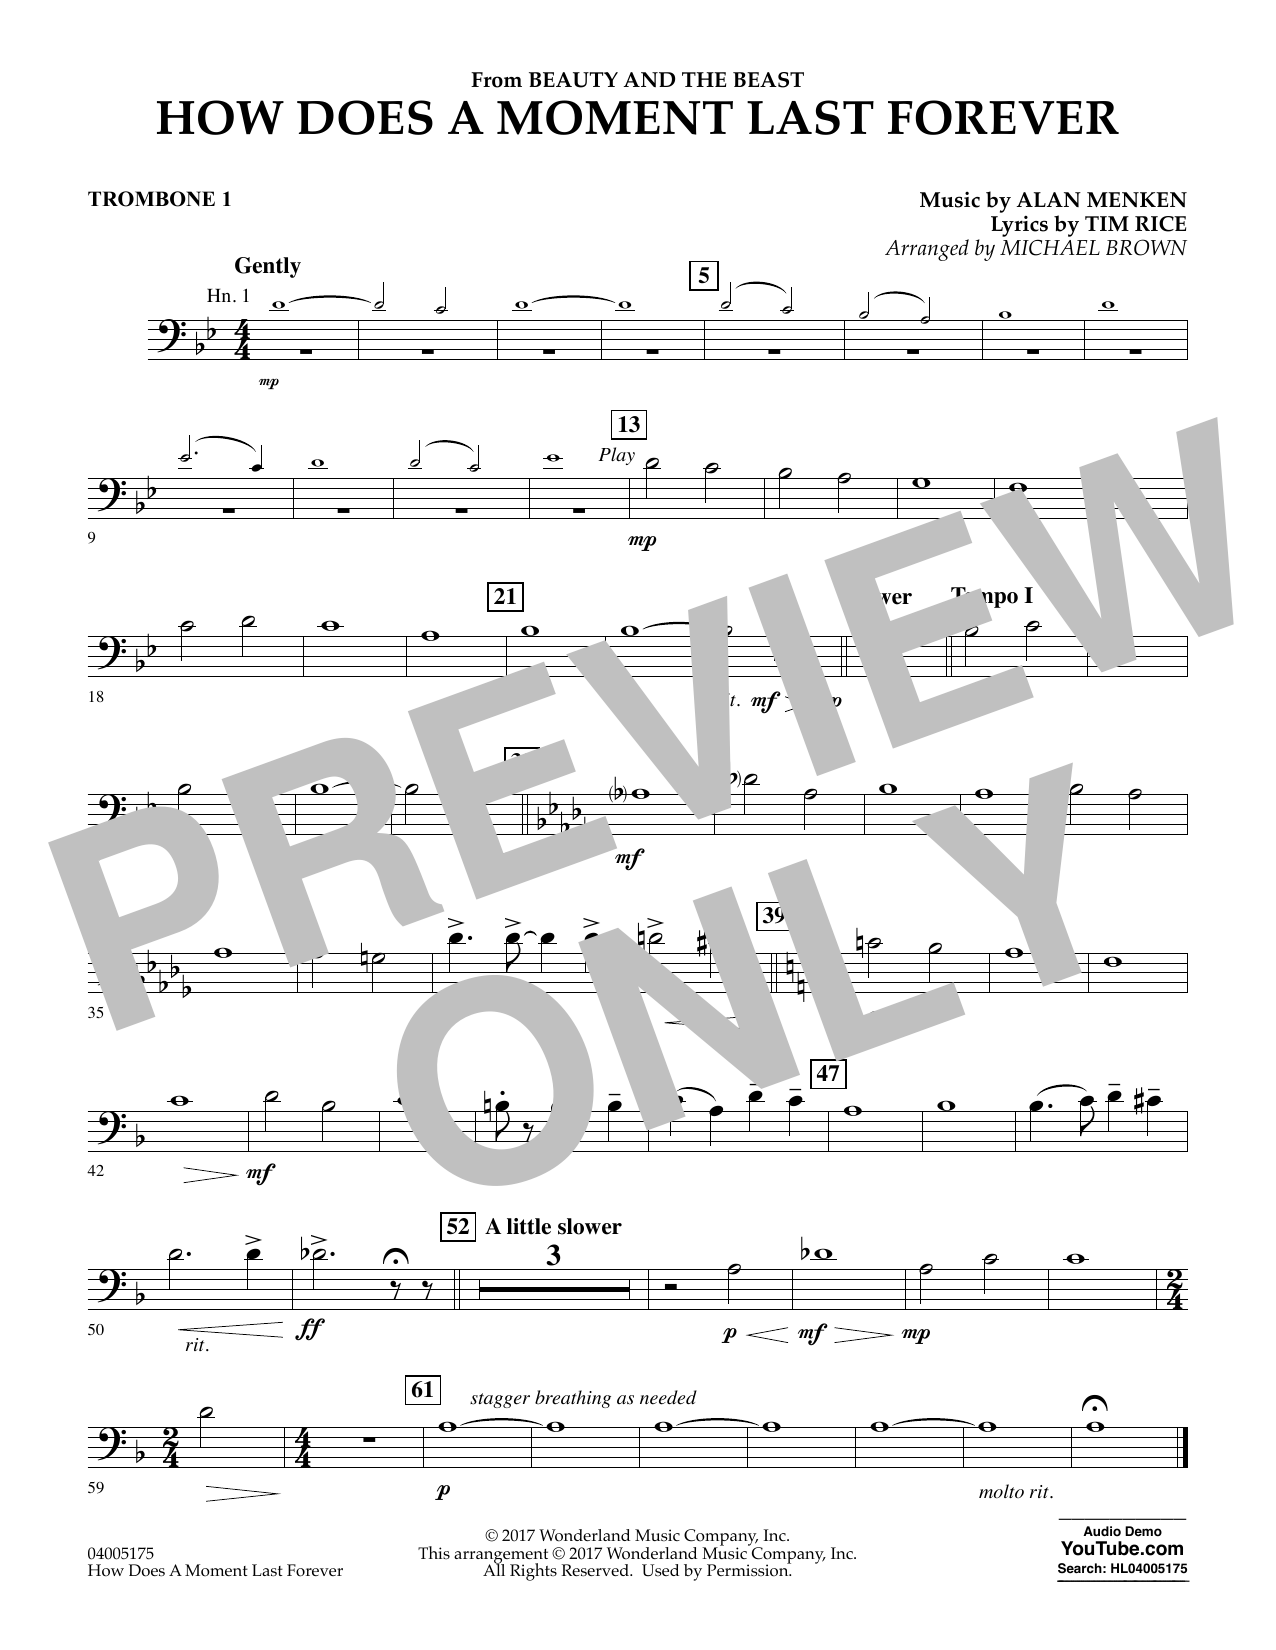 Michael Brown How Does a Moment Last Forever (from Beauty and the Beast) - Trombone 1 sheet music notes and chords. Download Printable PDF.